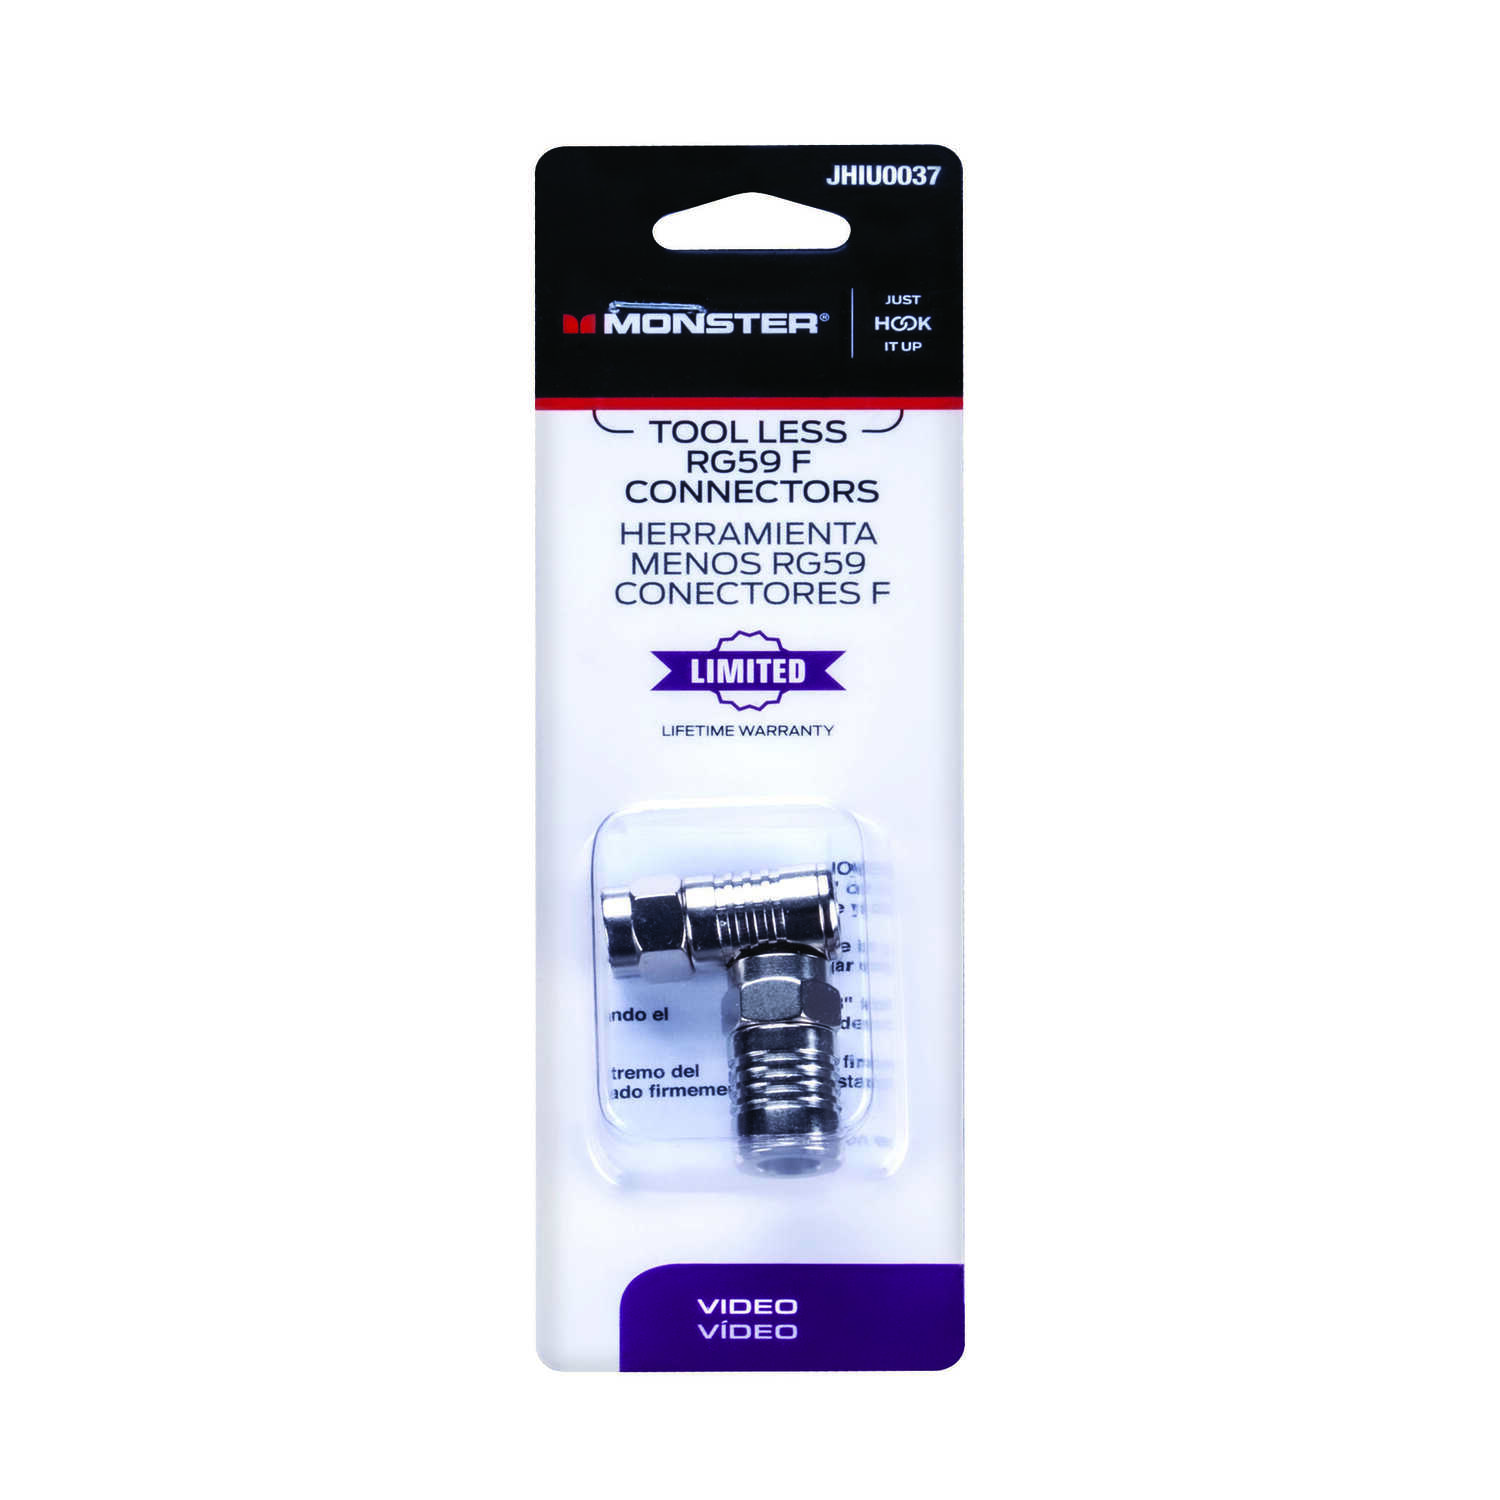 Monster Cable  Just Hook It Up  Cable  RG59  Coaxial Connector  2 pk